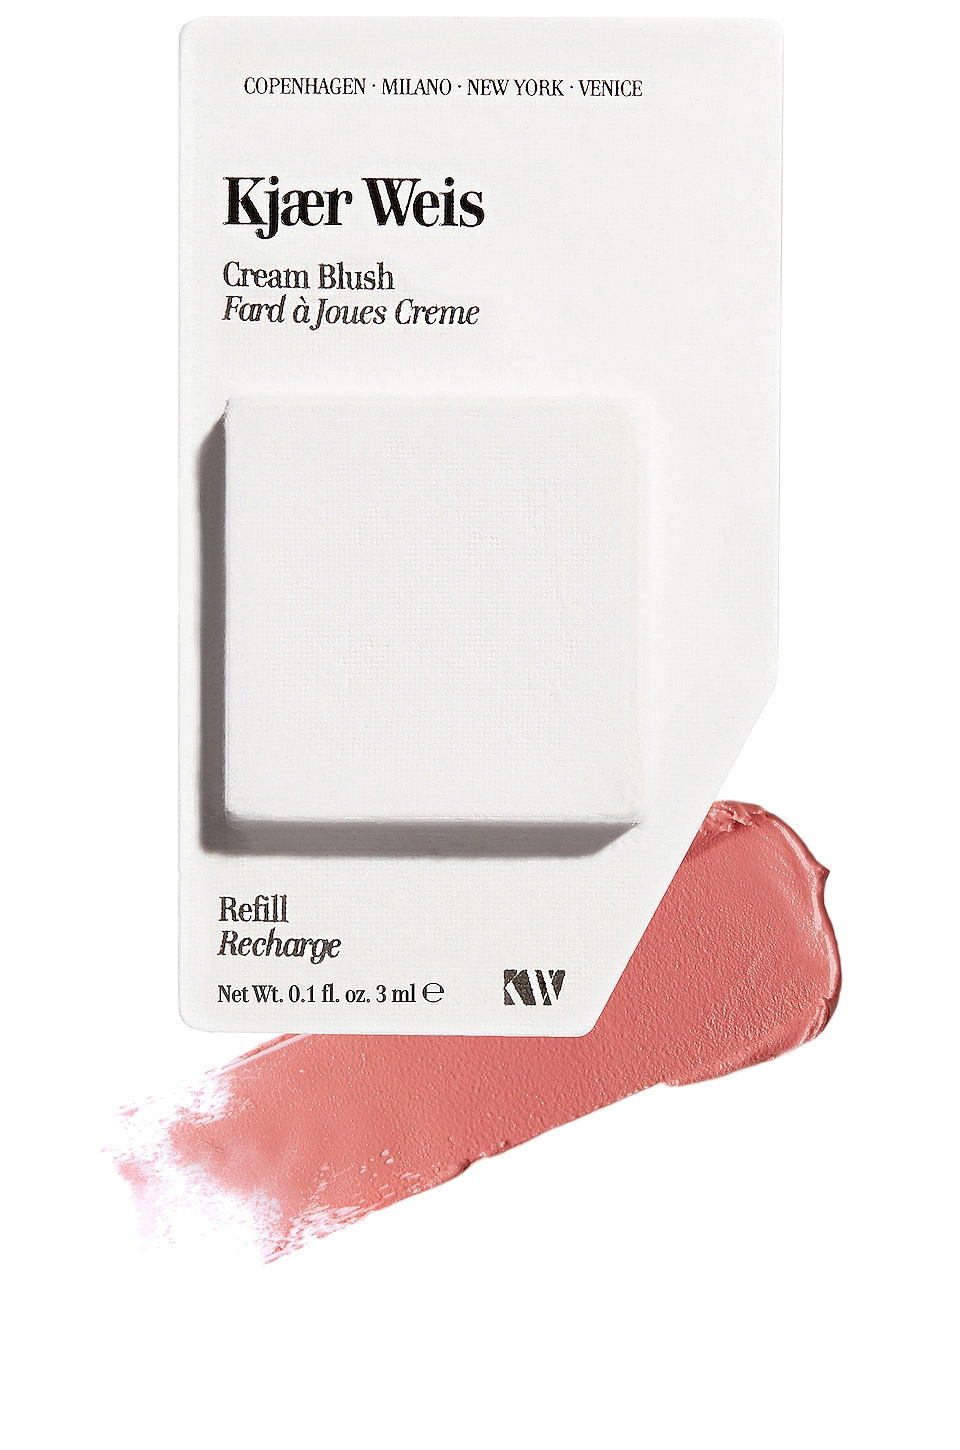 Kjaer Weis Cream Blush Refill in Sun Touched